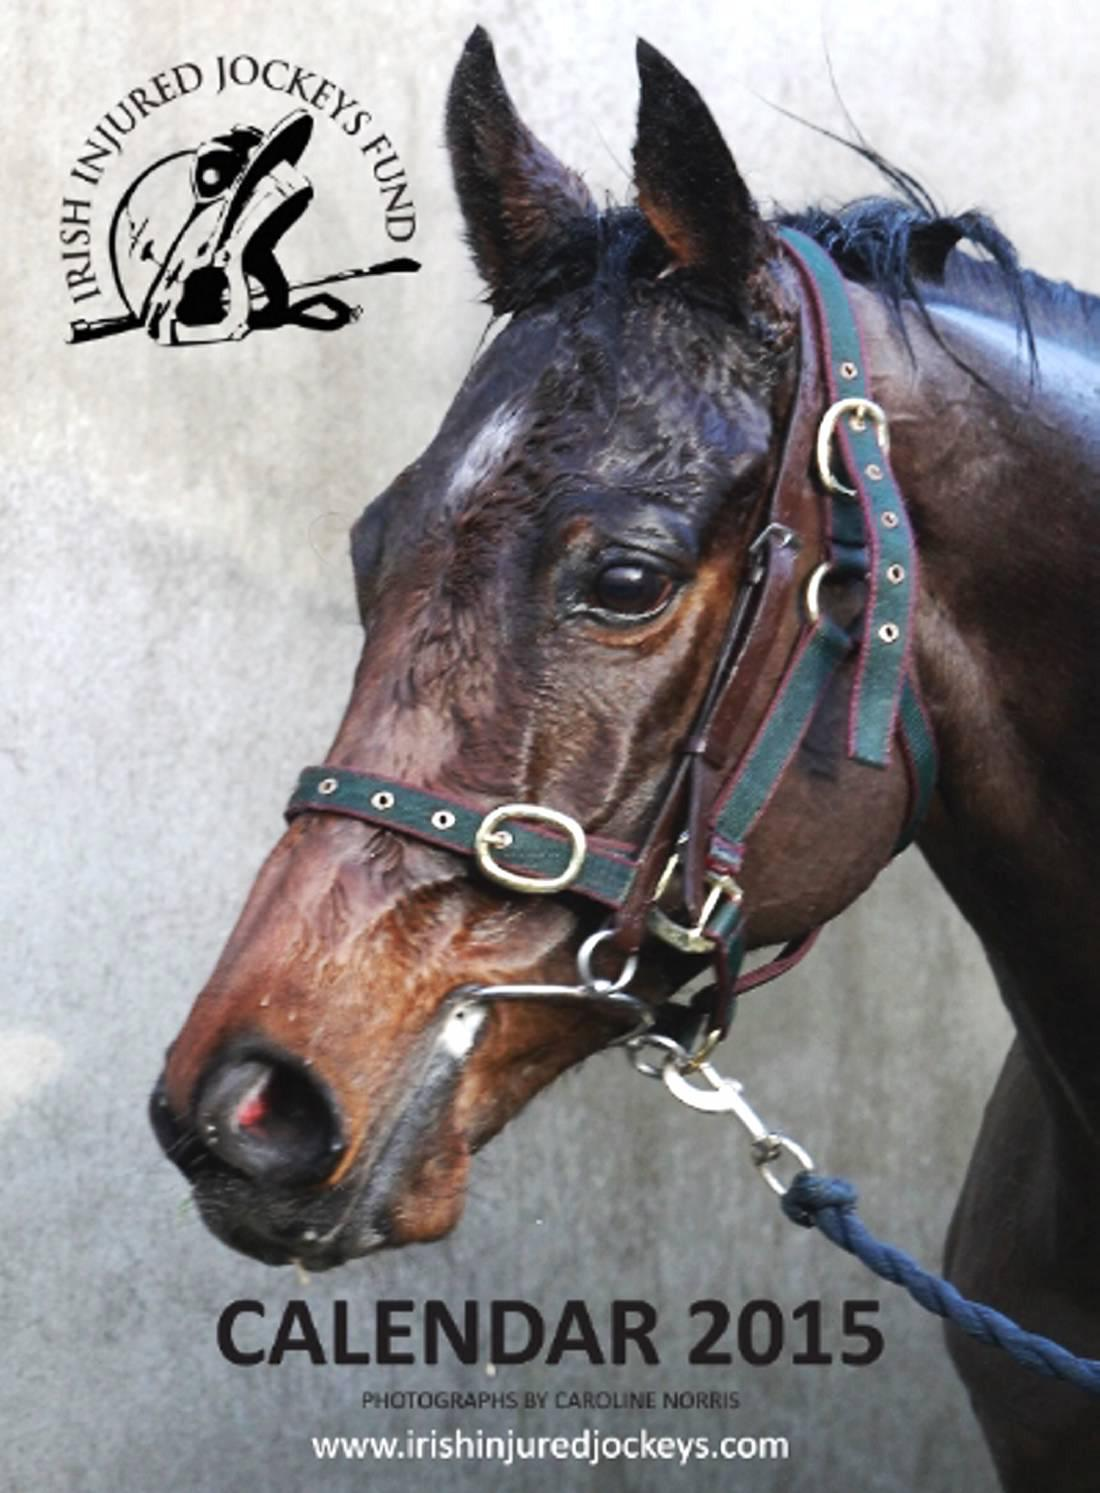 Tip-top gifts from the Irish Injured Jockeys Christmas collection